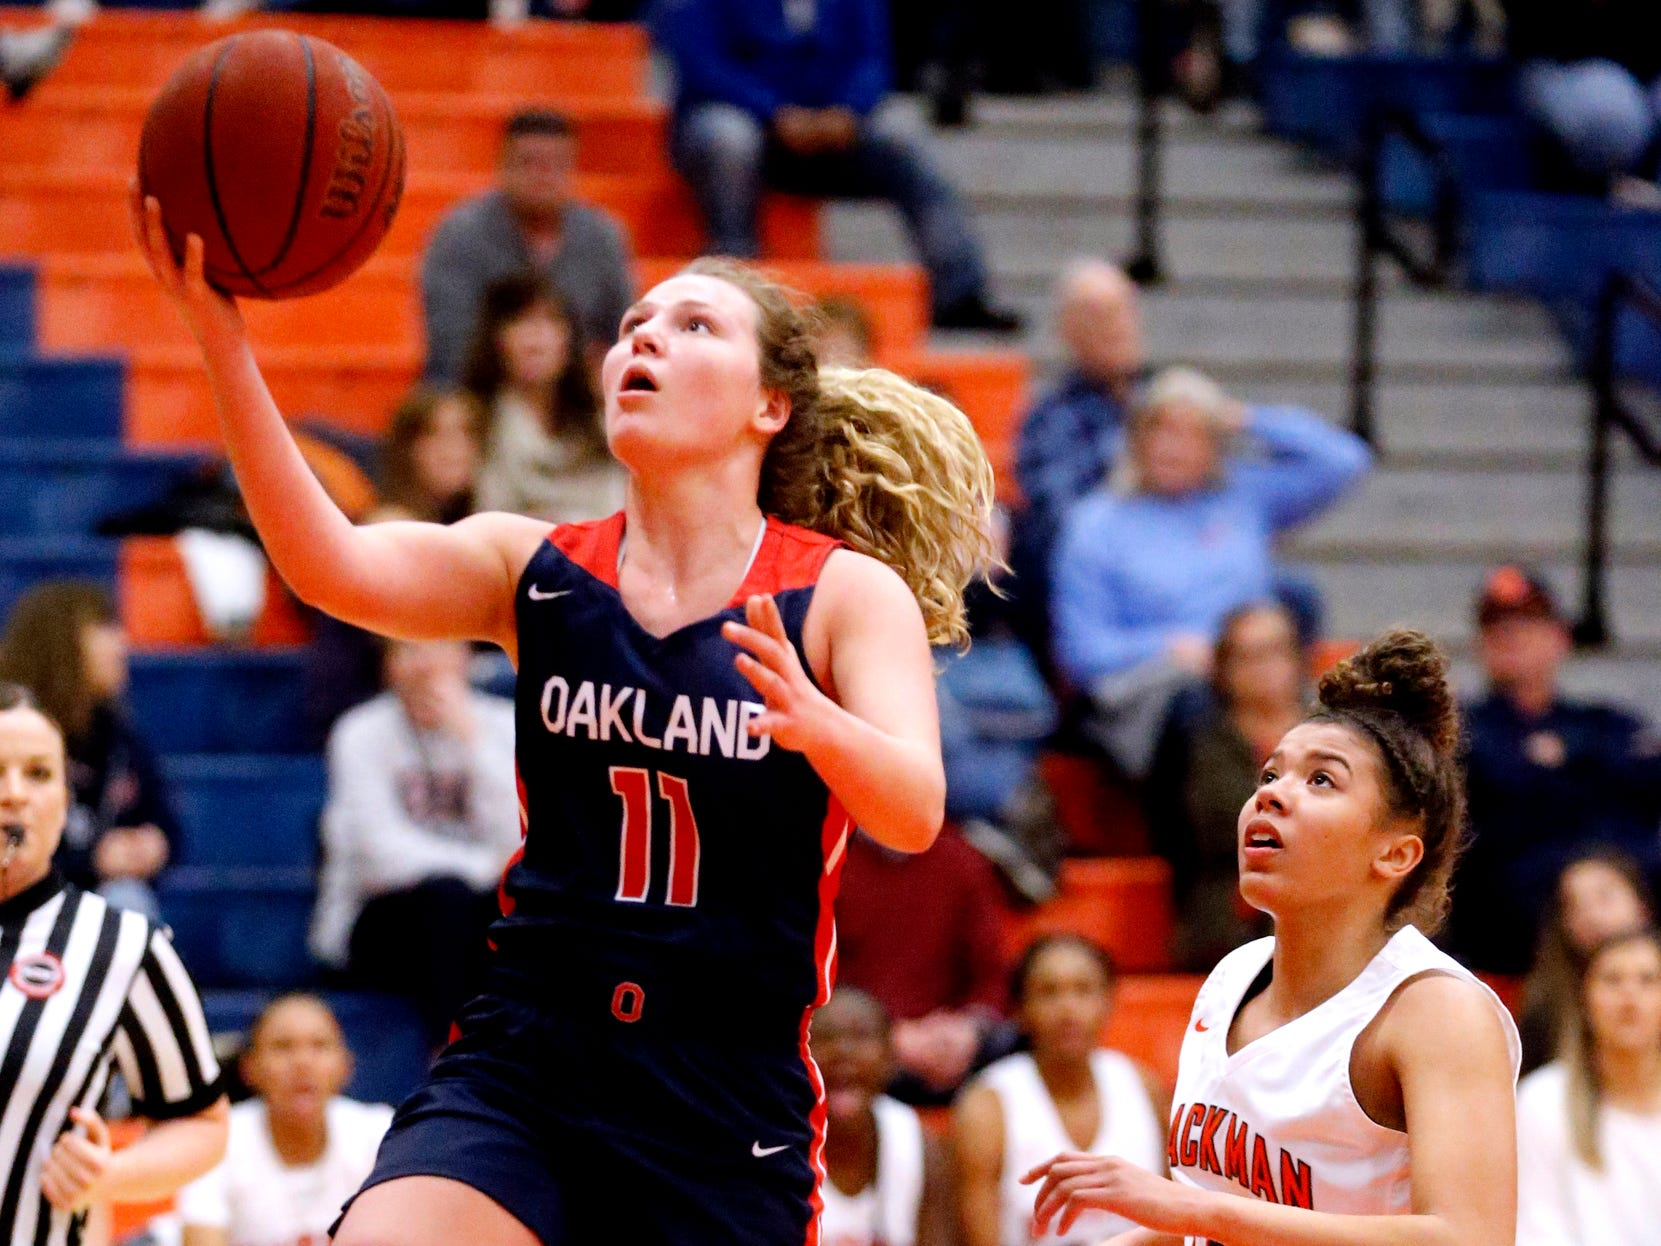 Oakland's Claira McGowan (11) got up for a shot as Blackman's Jaida Bond (10) comes up from behind her on Friday, Feb. 8, 2019.